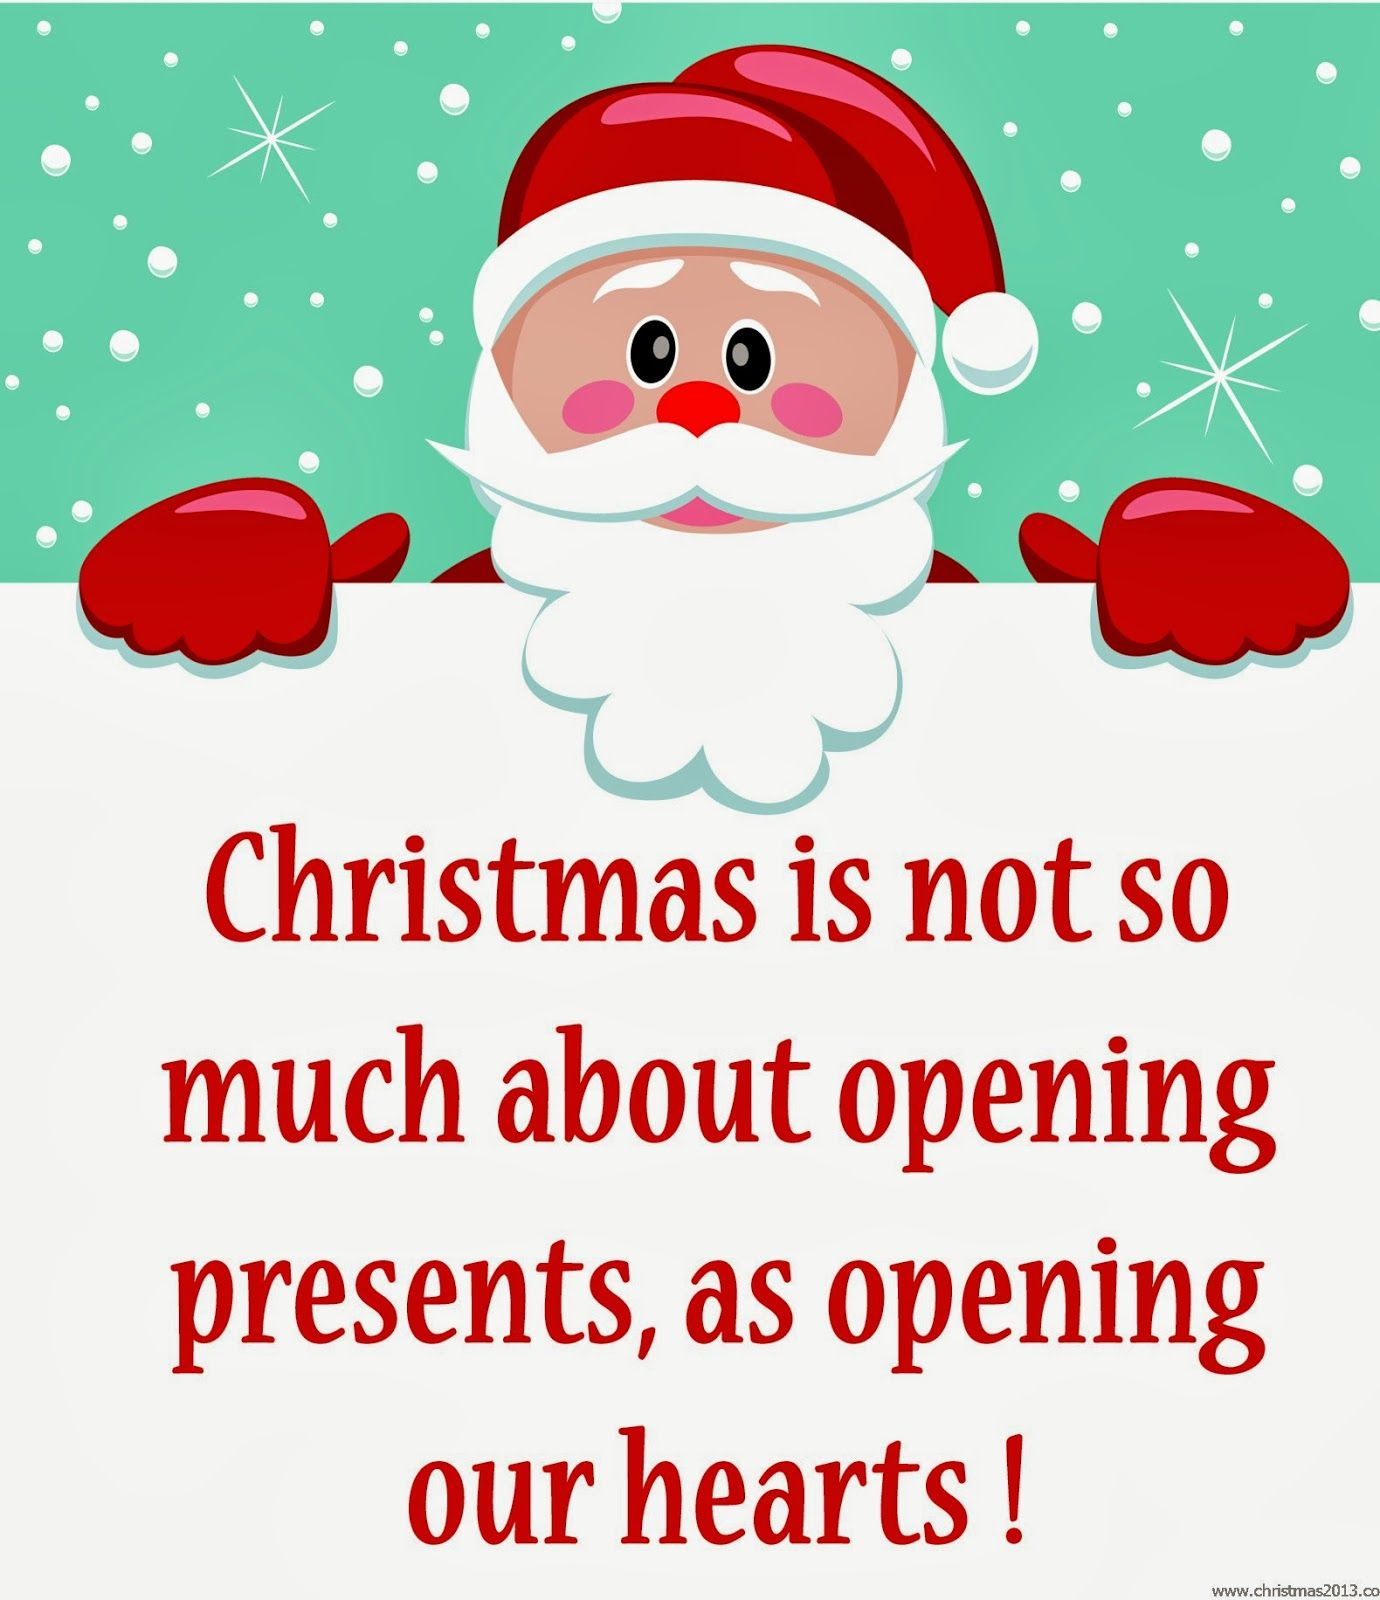 Charming Merry Christmas Wishes Inspirational Xmas Greetings, Funny Messages